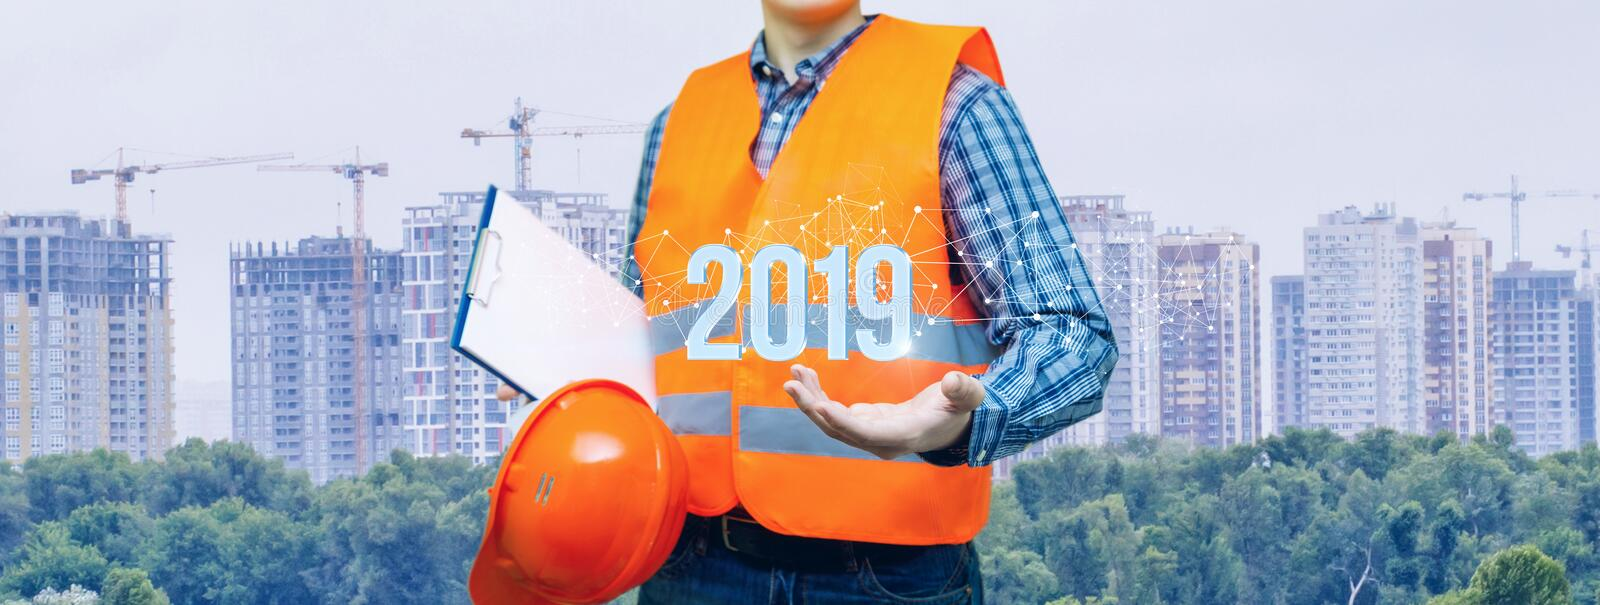 The concept is the building industry perspective of the future year royalty free stock image